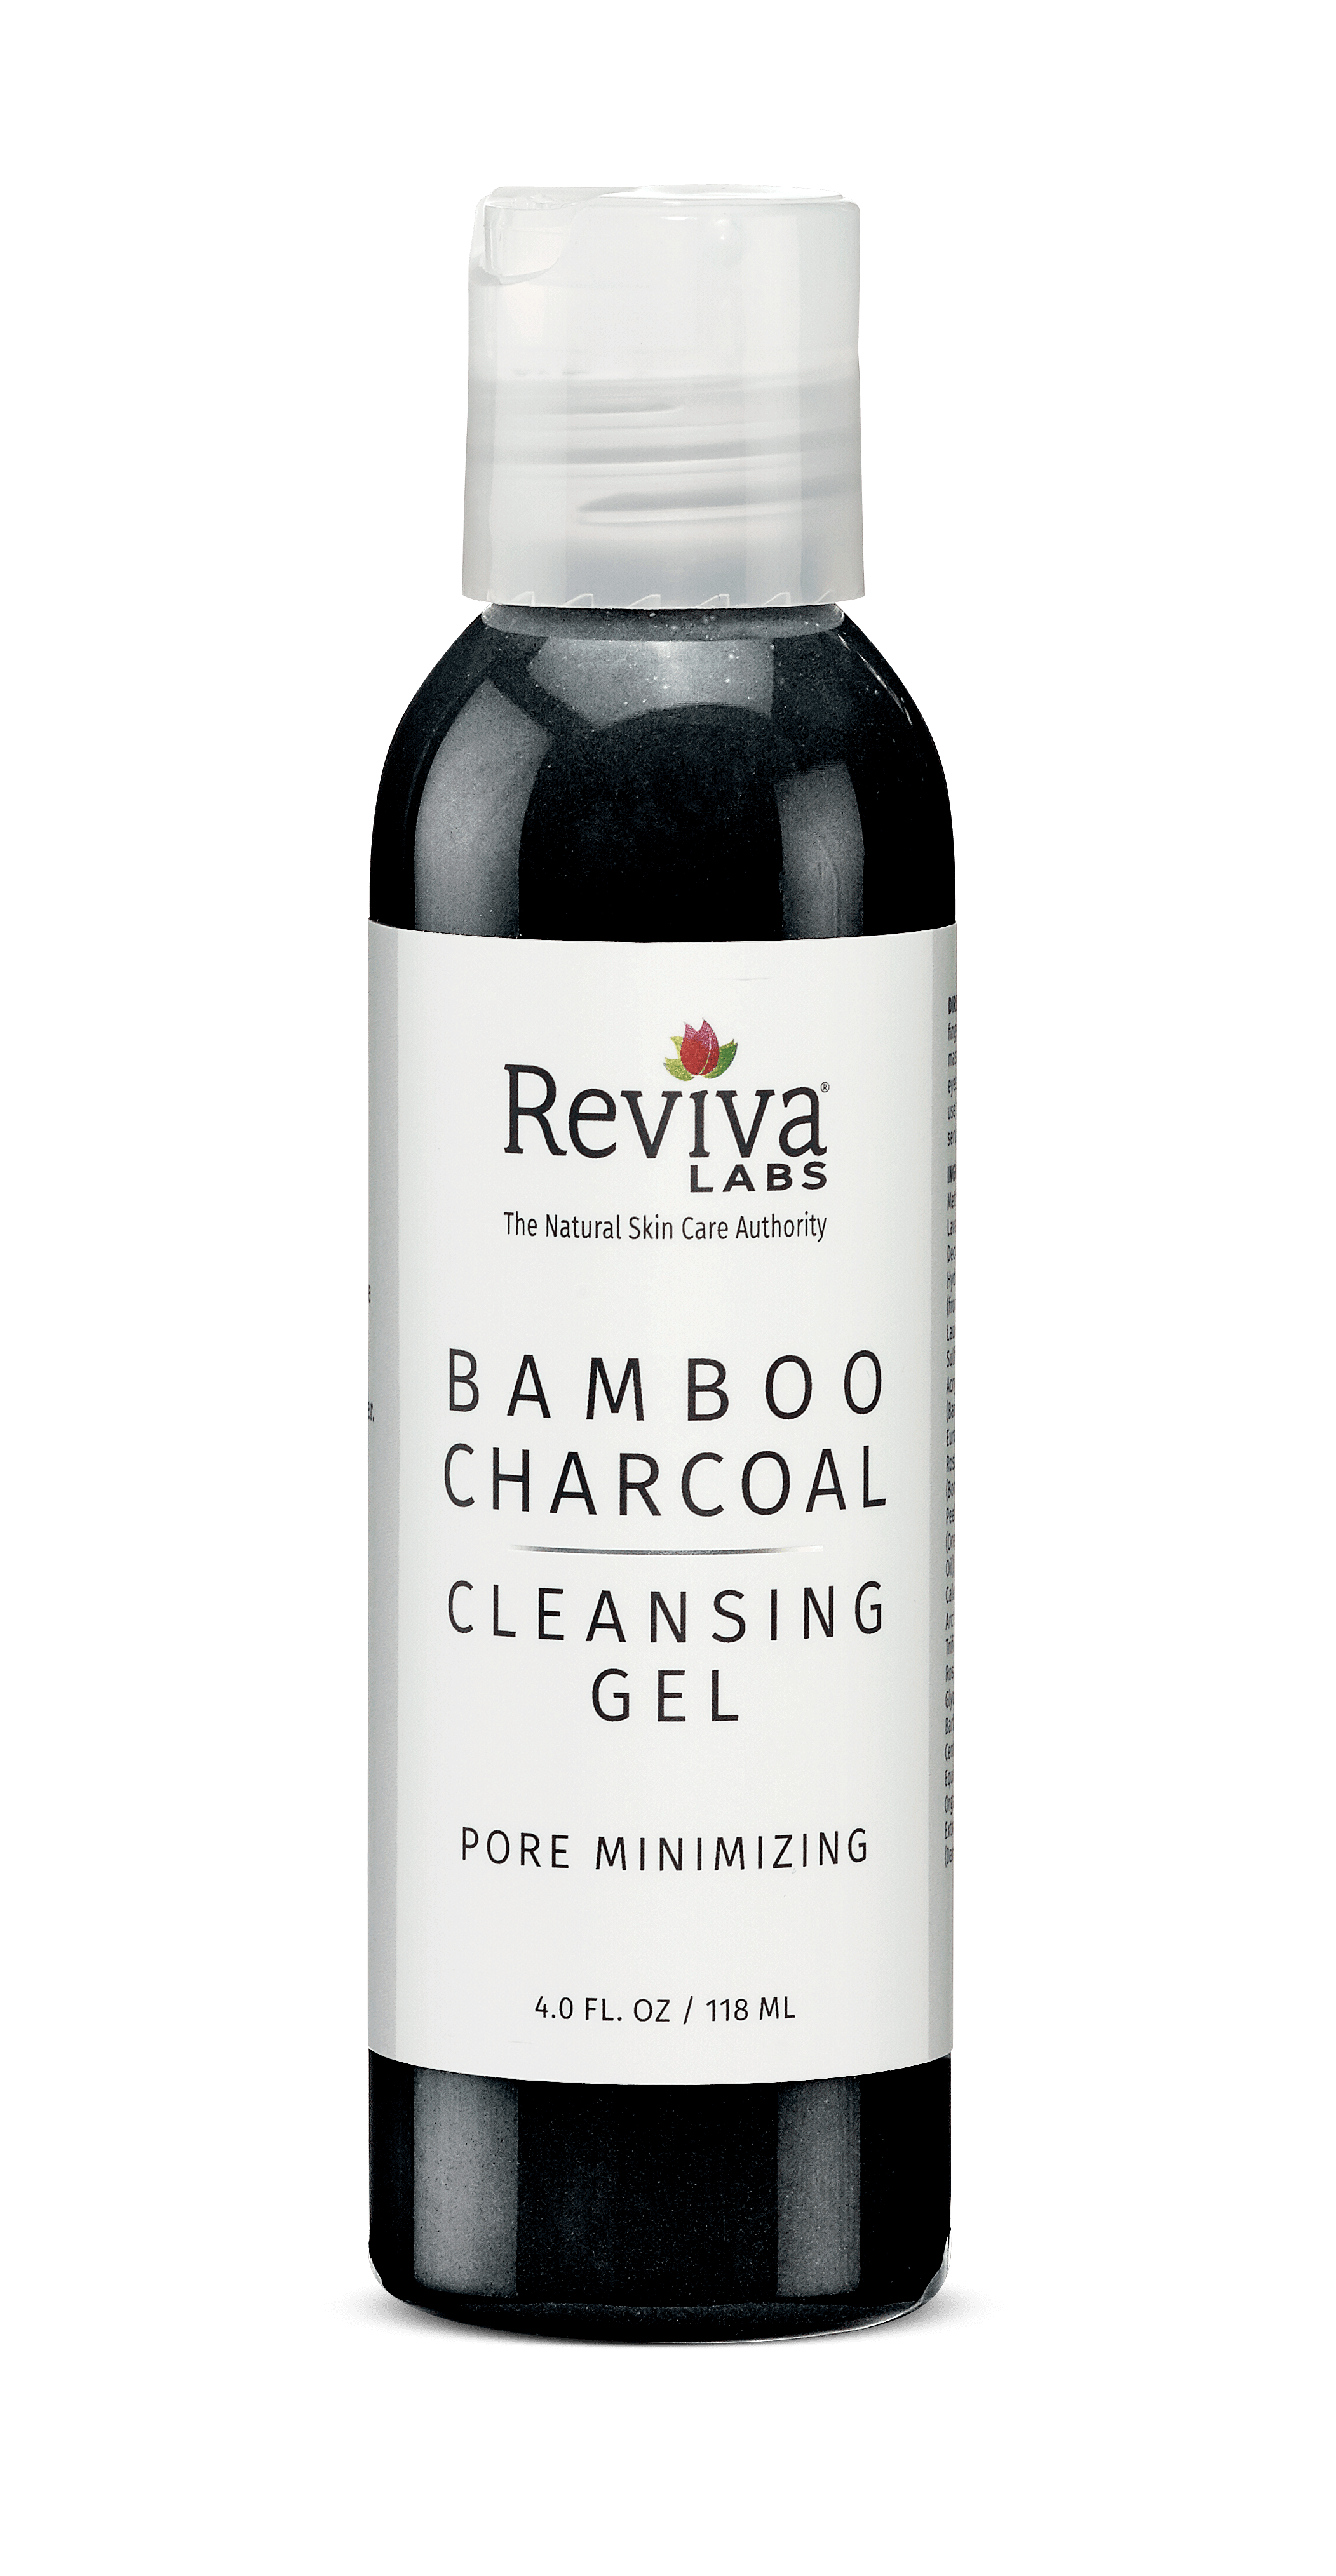 Bamboo Charcoal Pore Minimizing Cleansing Gel Reviva Labs